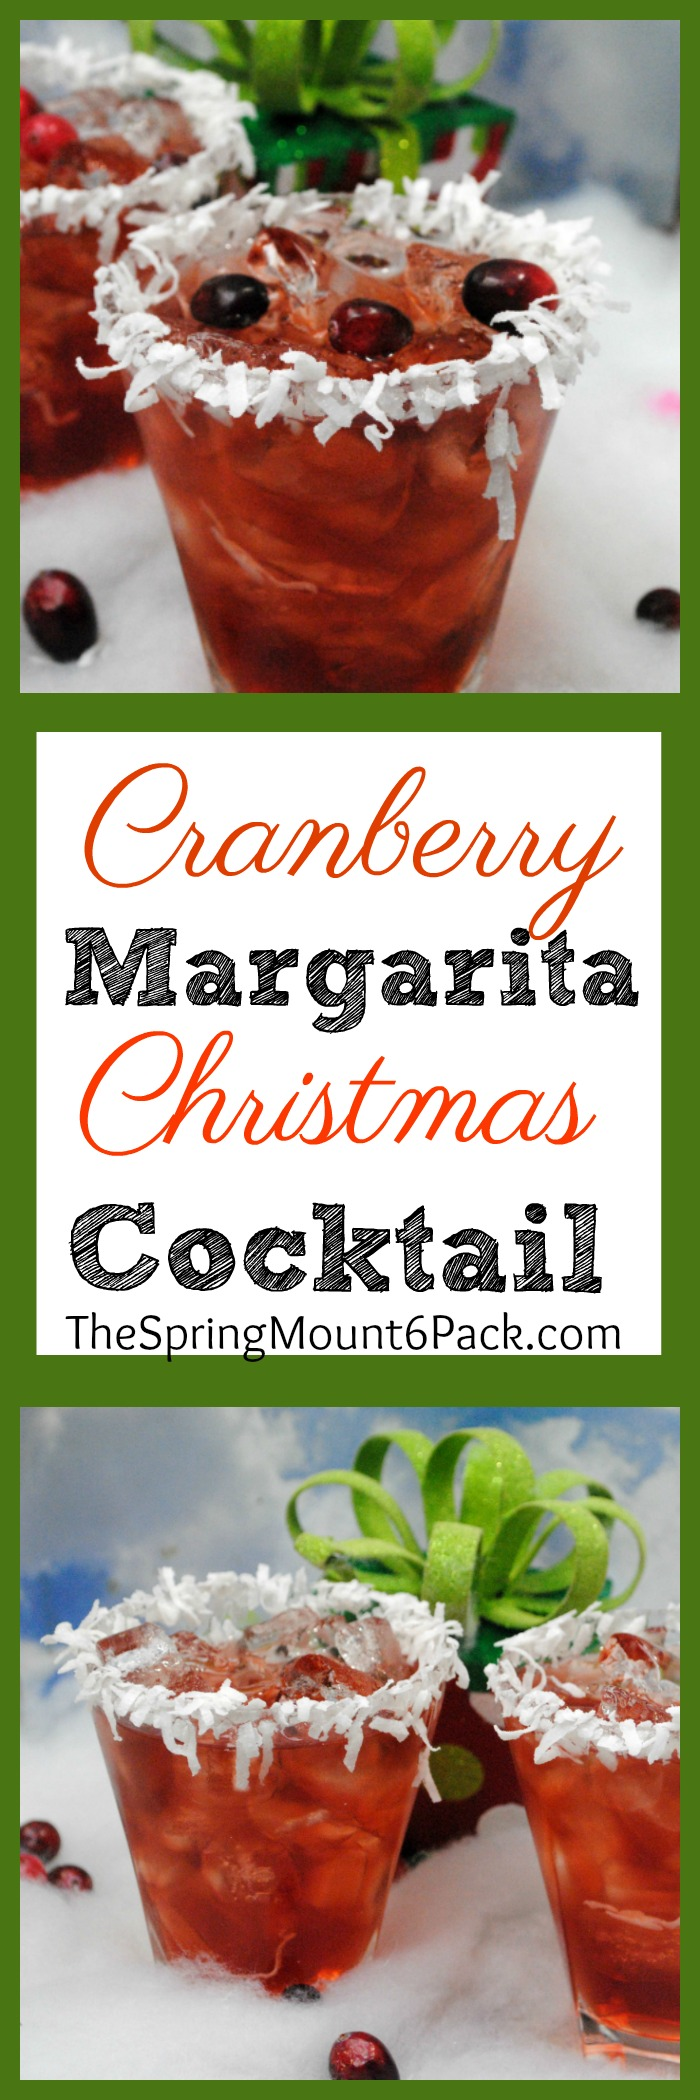 Looking for a Christmas cocktail? Or a great cocktail for Thanksgiving? This specialty Christmas drink will be a nice treat for your next Christmas get together.